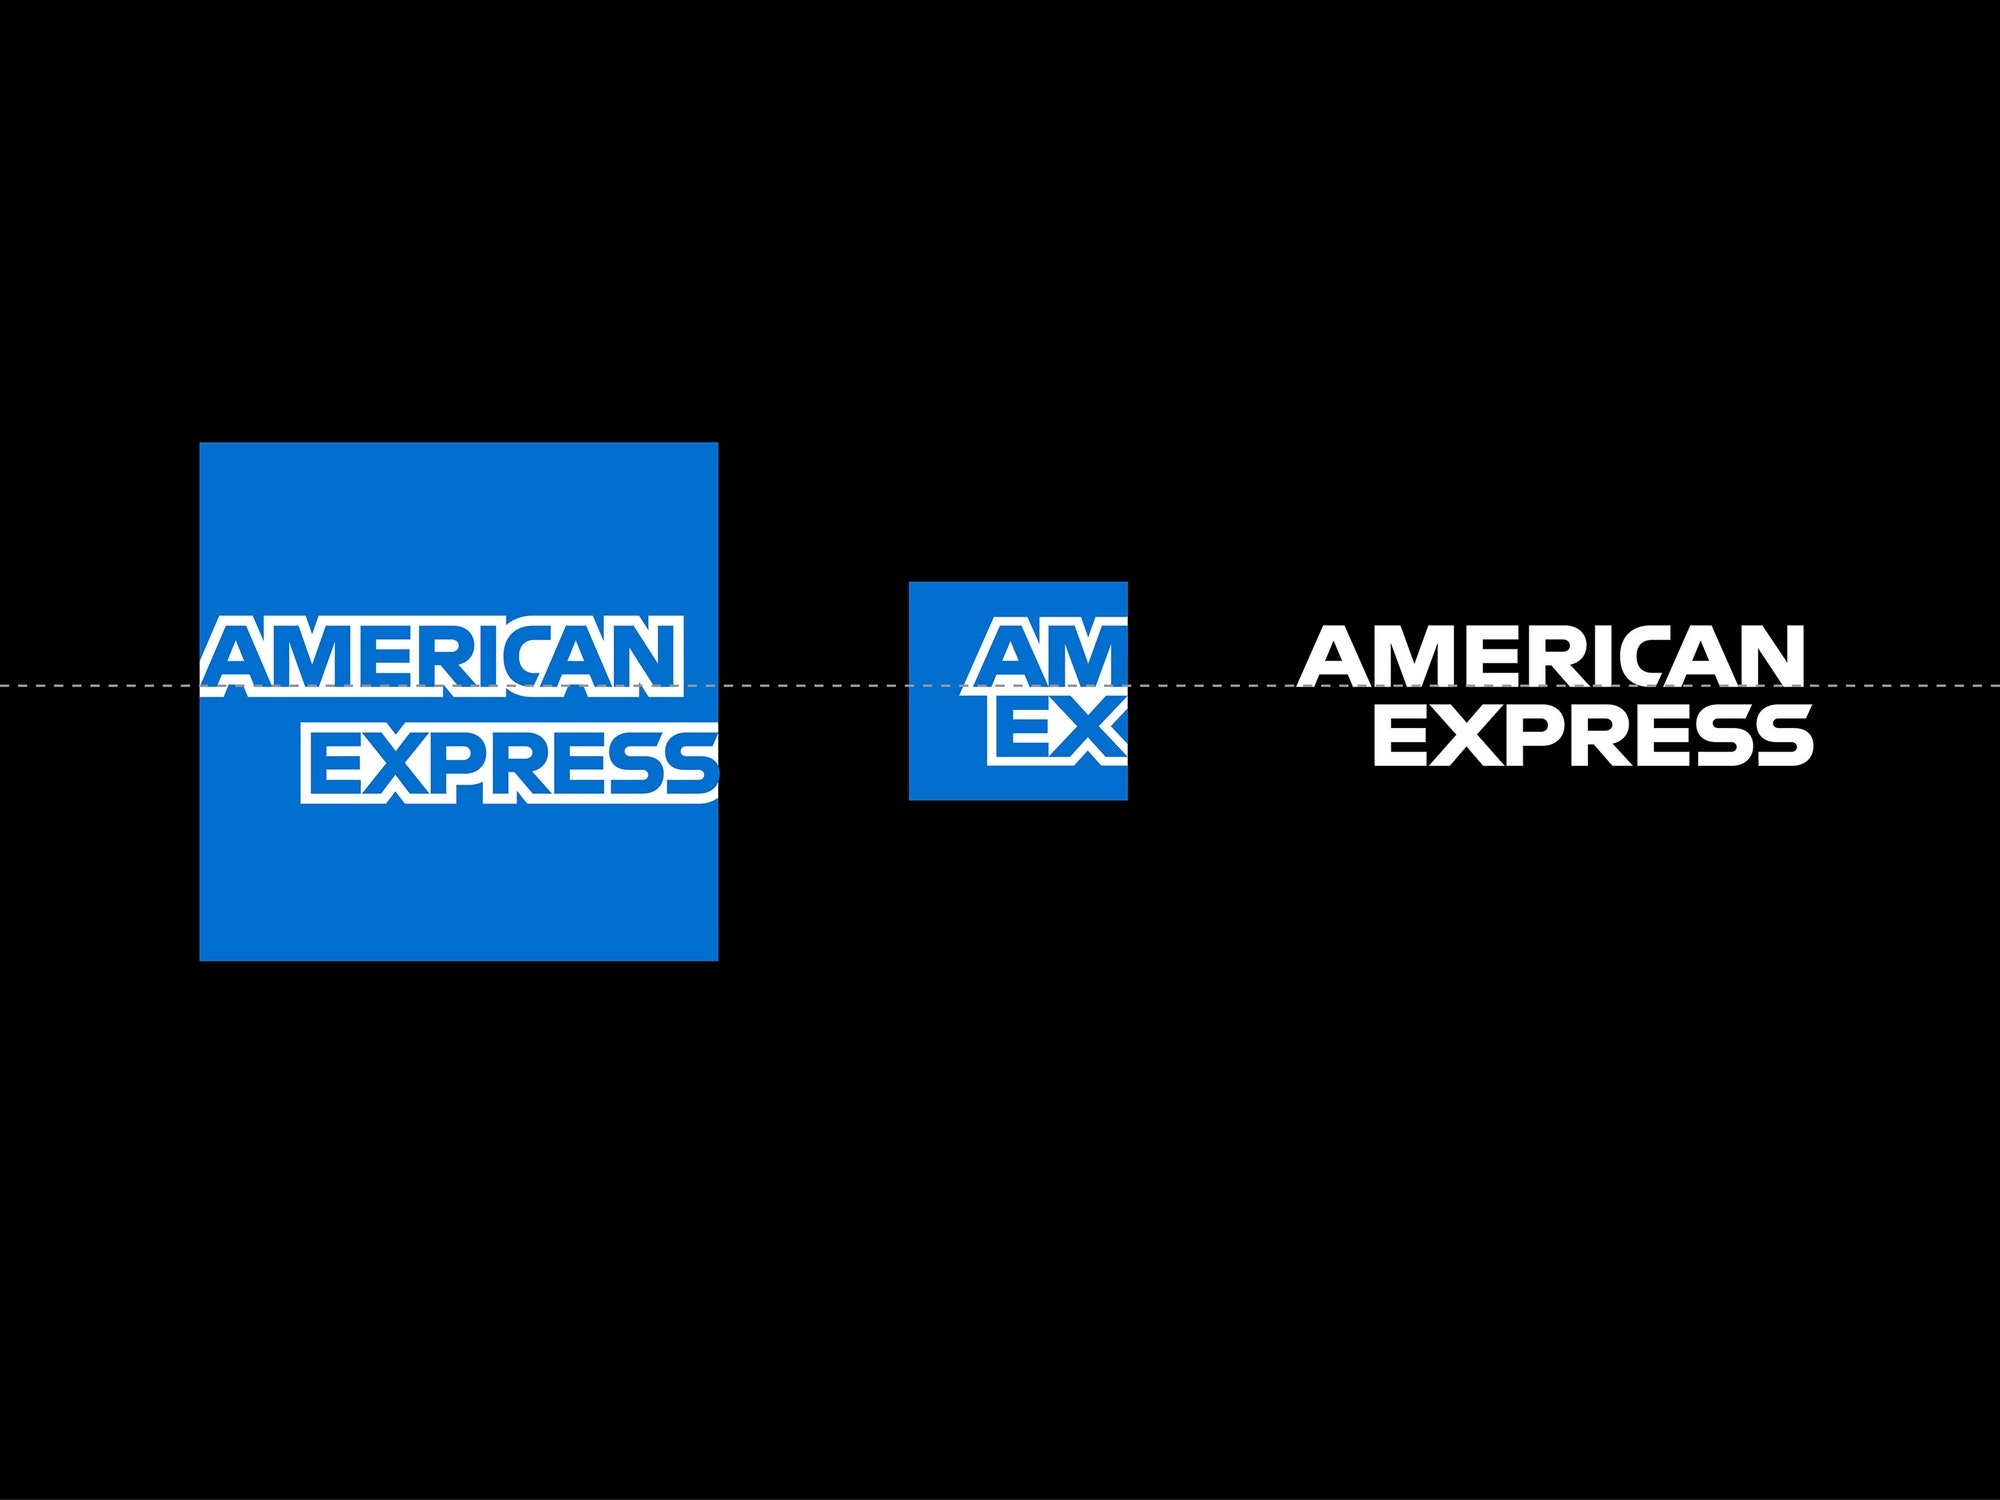 Investigating-good-design-american-express-unveils-new-logo-after-40-years